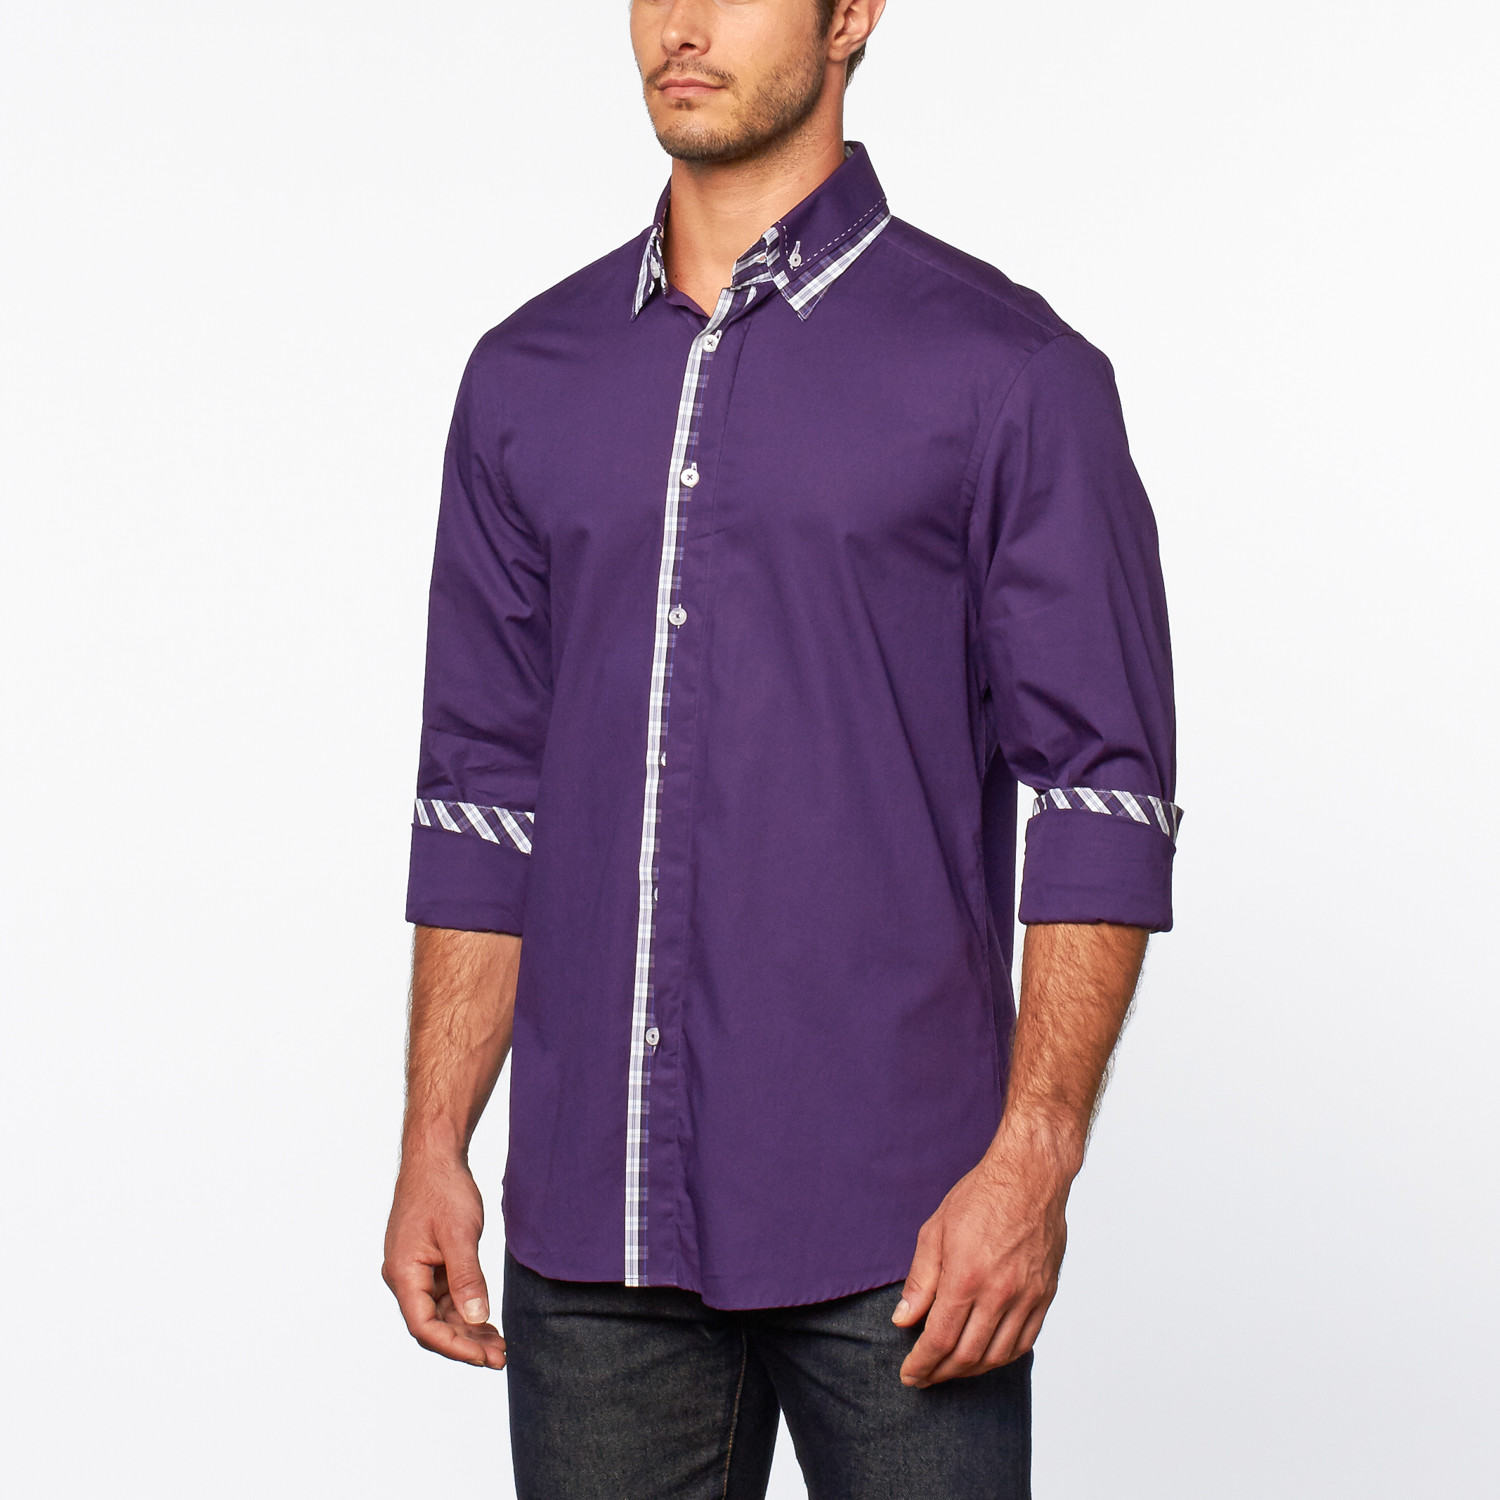 Button Up Shirt Plaid Trim Purple S Dolce Guava